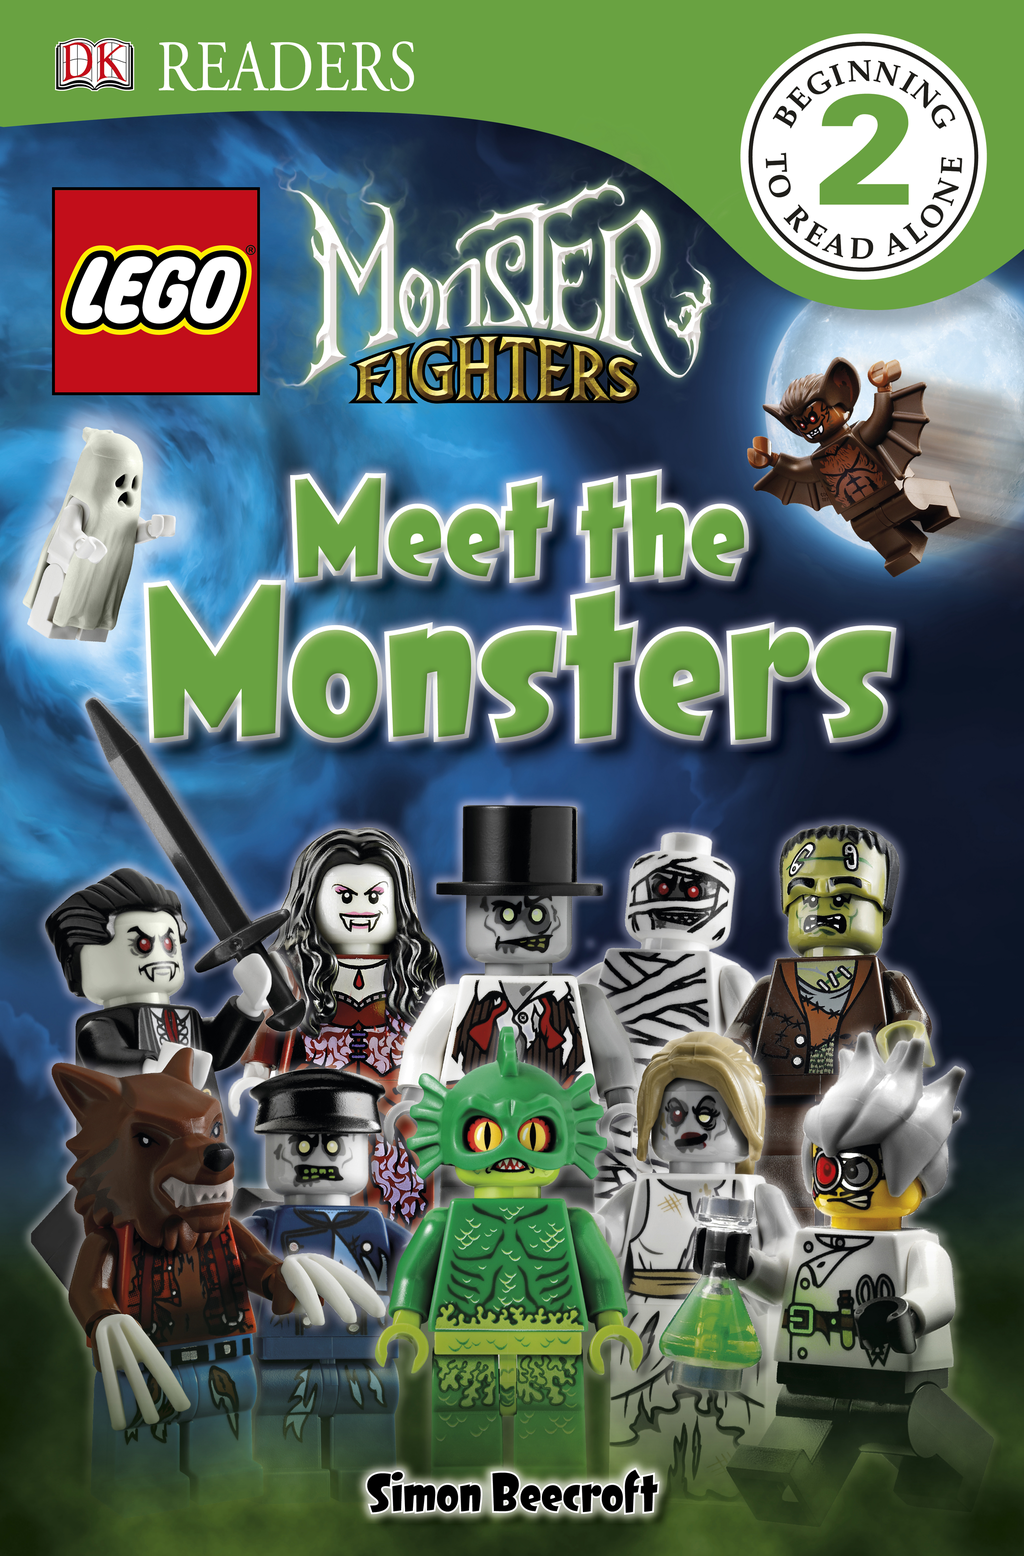 LEGO� Monster Fighters Meet the Monsters